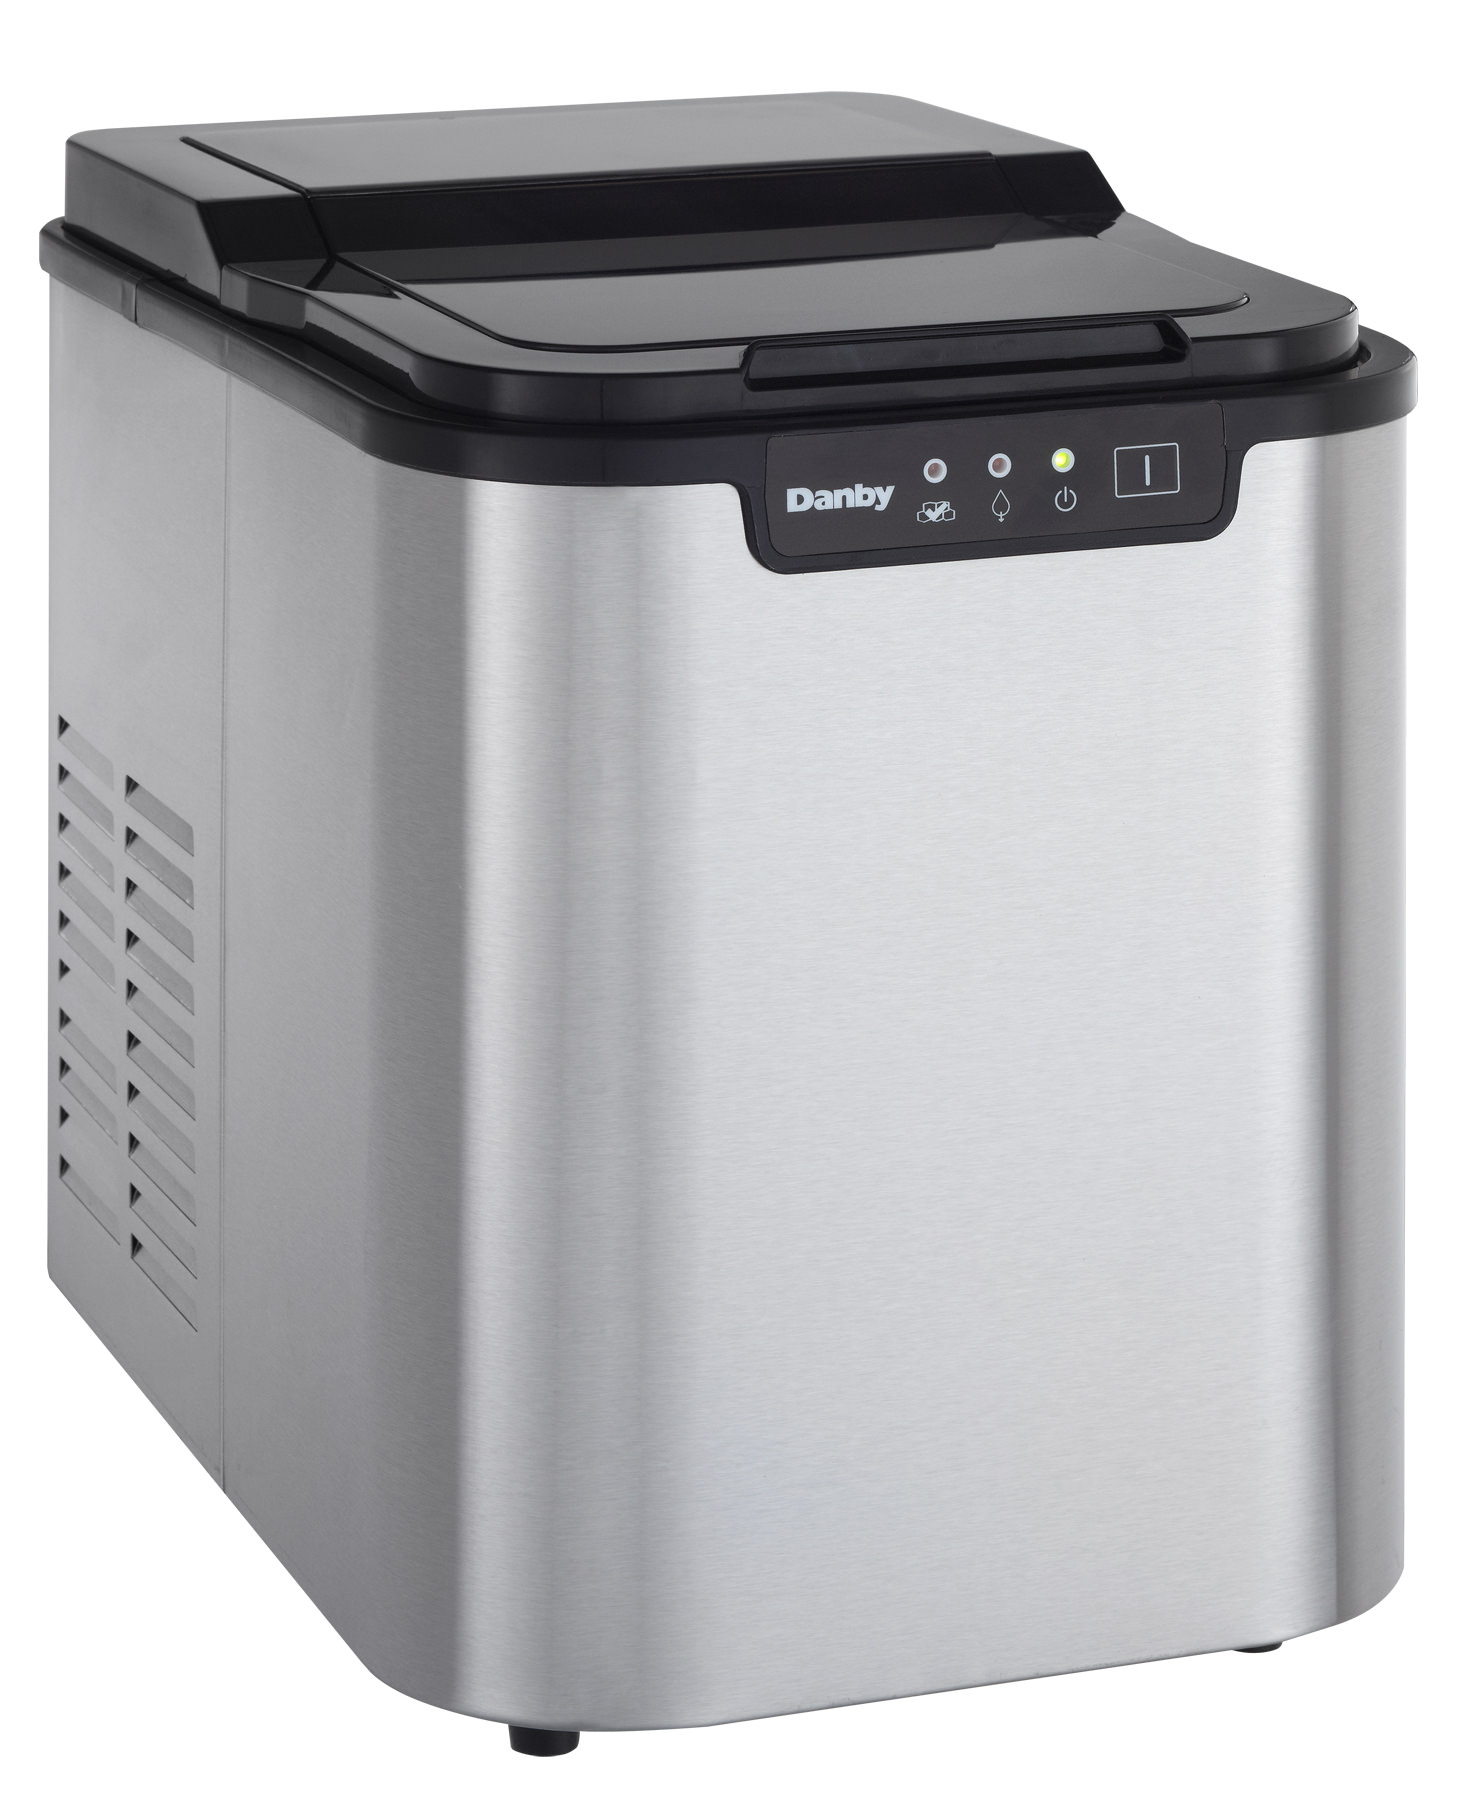 Countertop Ice Maker Walmart Danby Portable Ice Maker In Stainless Steel